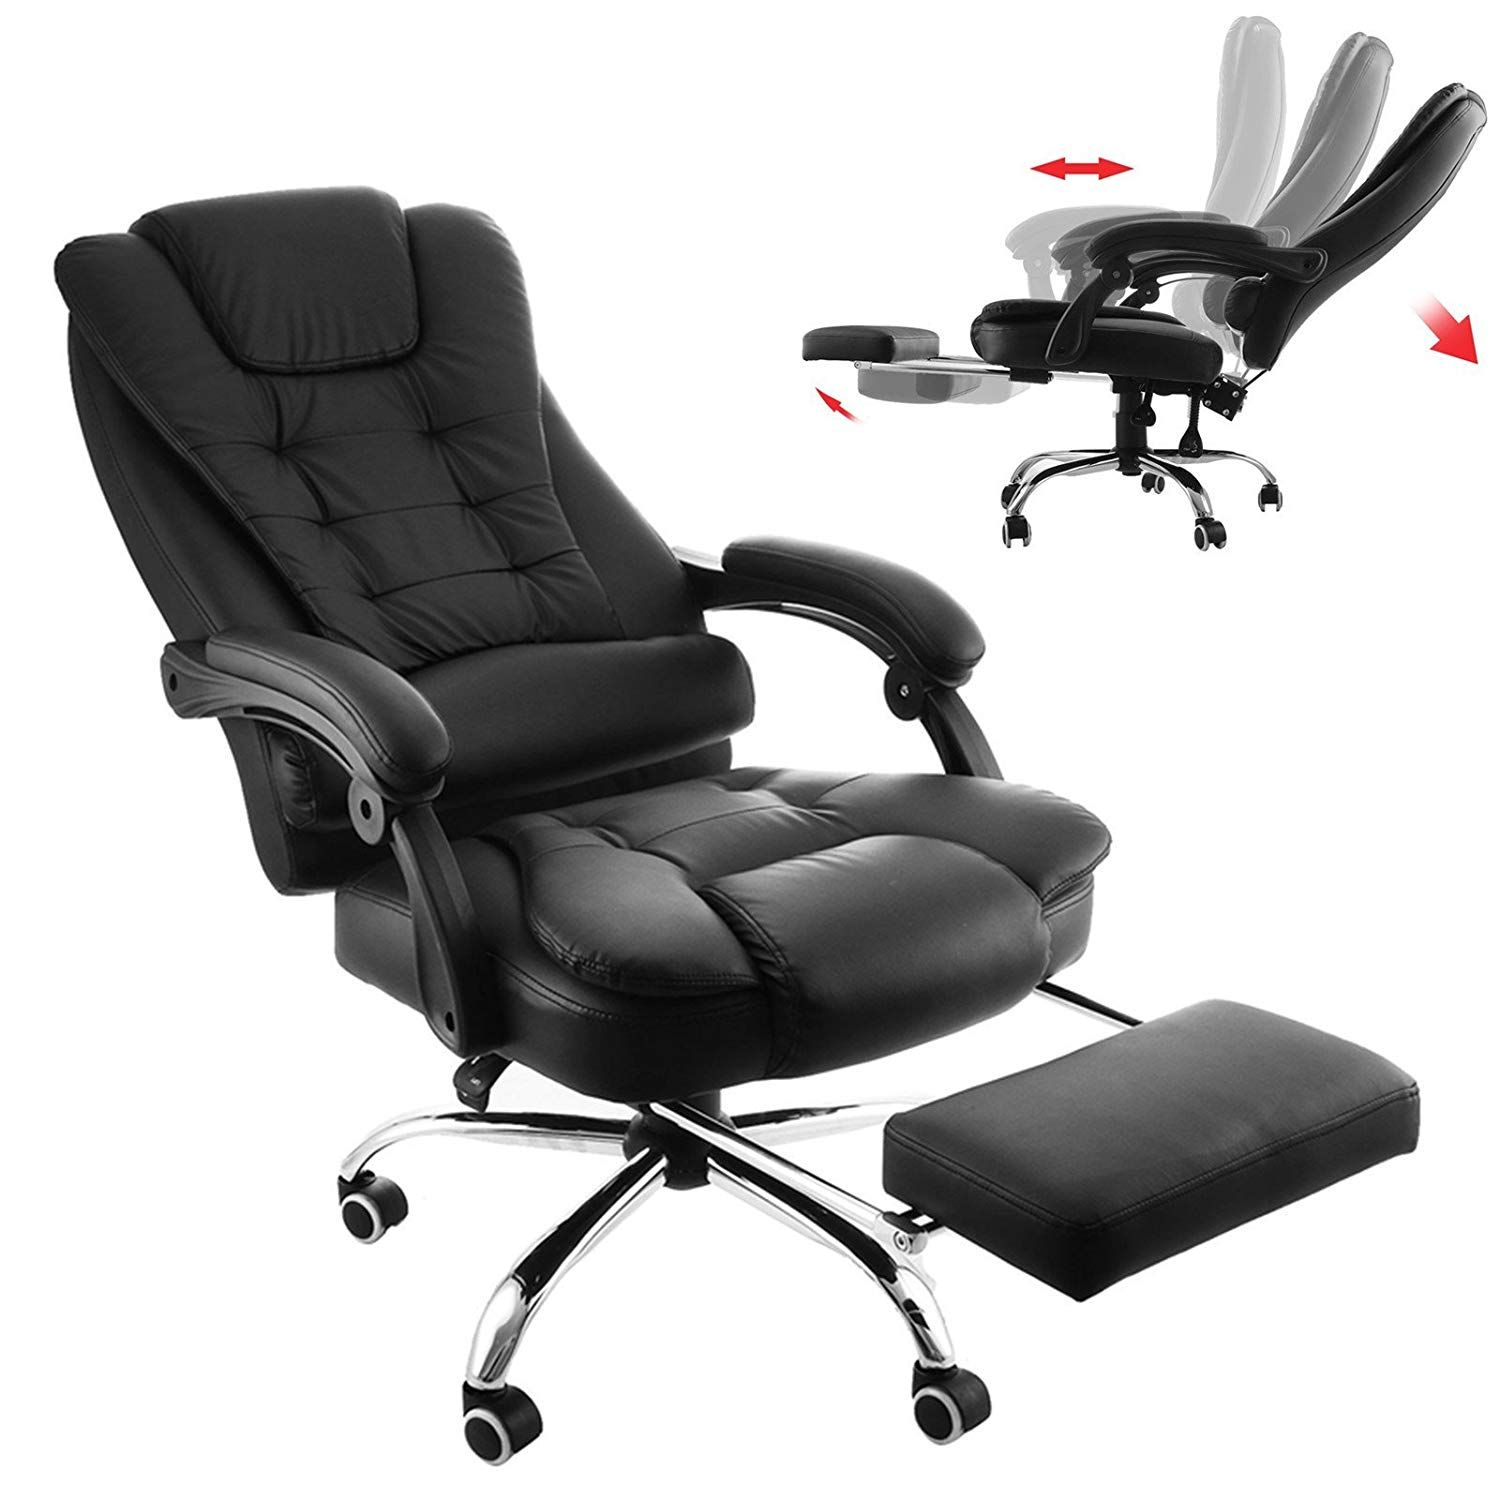 Computer Chair With Footrest in 8  Reclining office chair